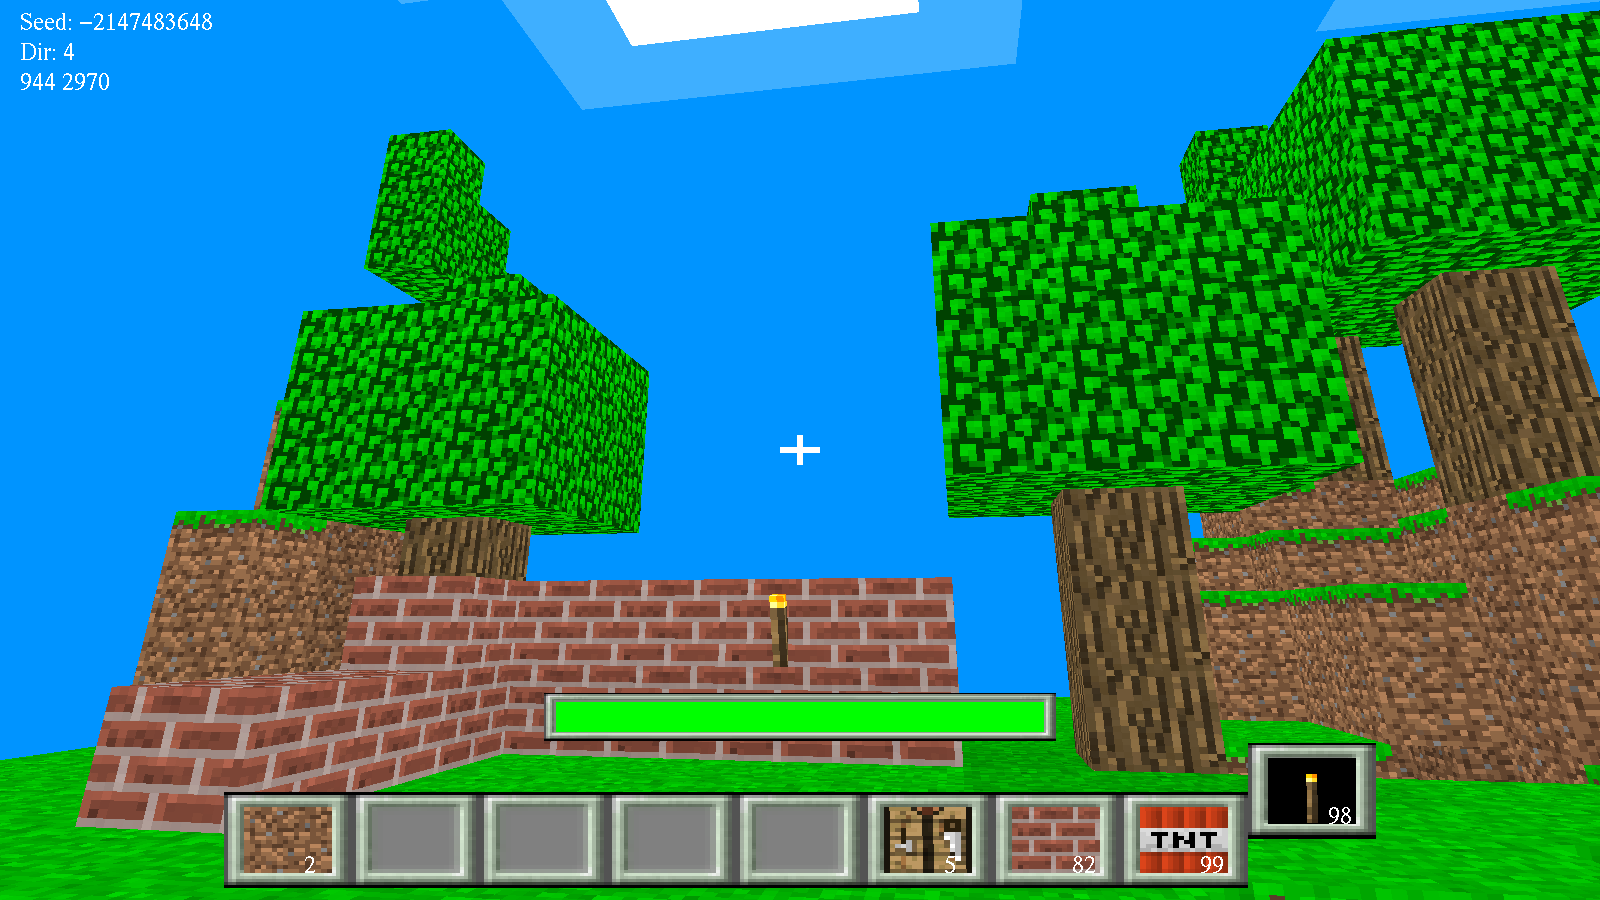 World of Block. С++, OpenGL